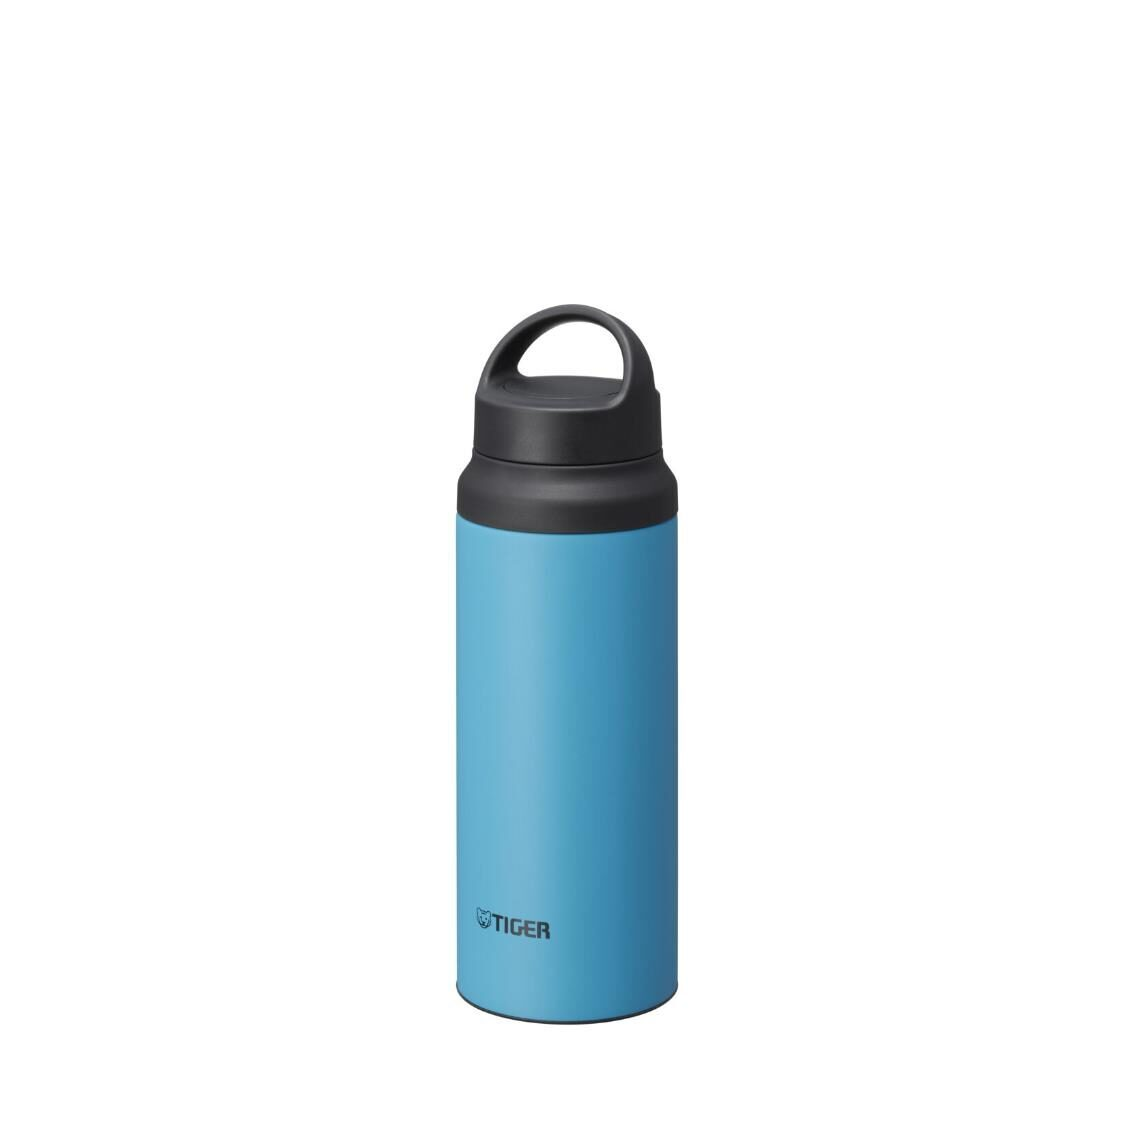 Tiger 600ml Double Stainless Steel Bottle - Honu Mcz-S060 Ac